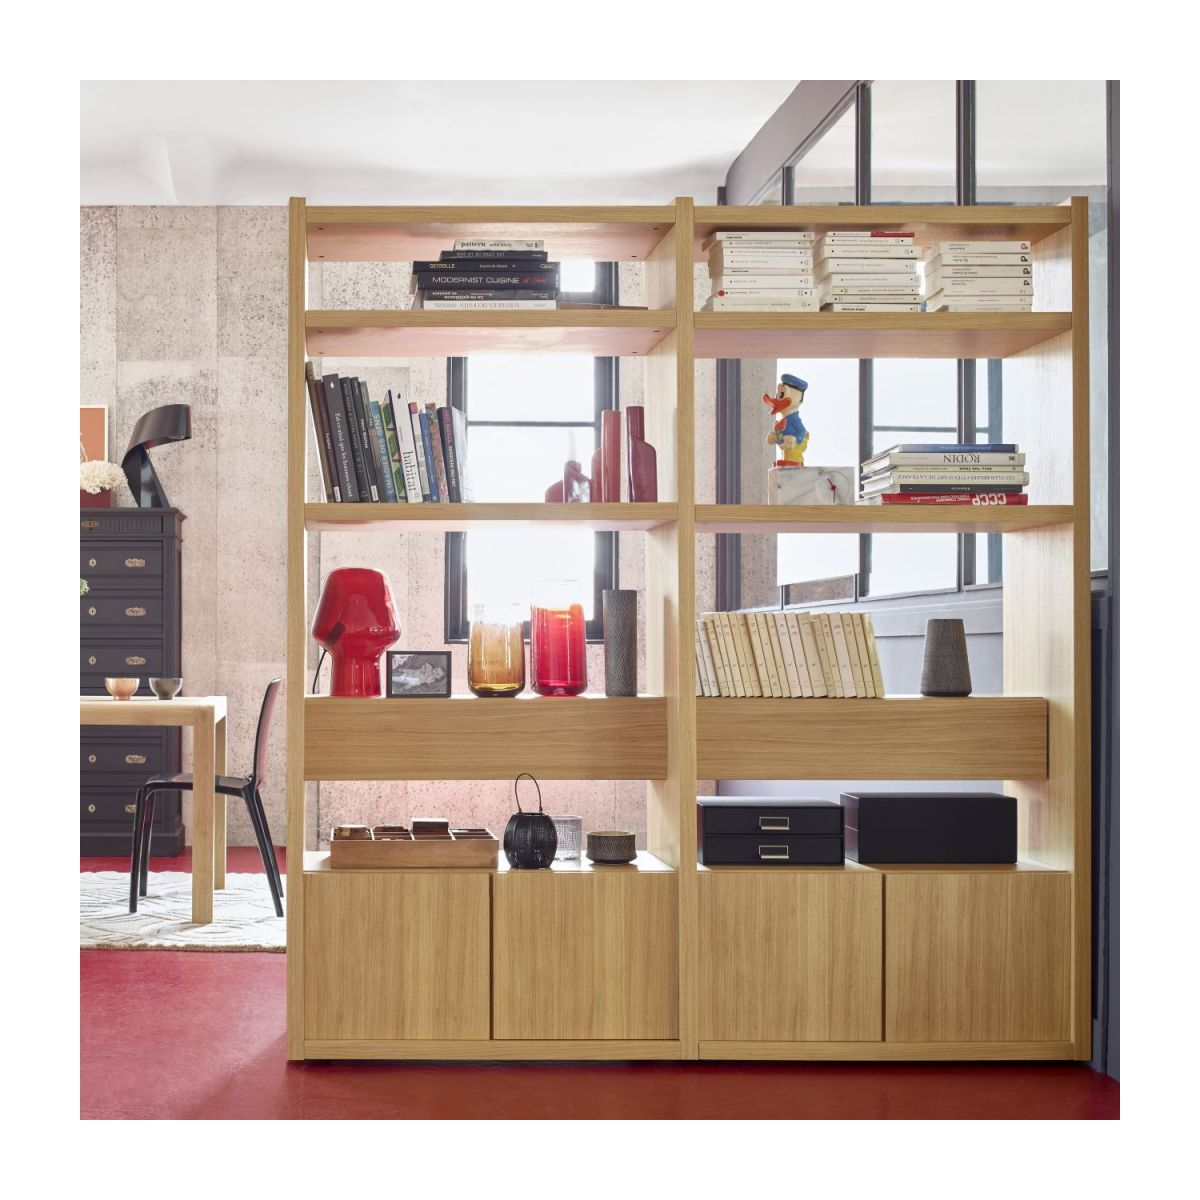 Extension for small oak shelving unit n°5